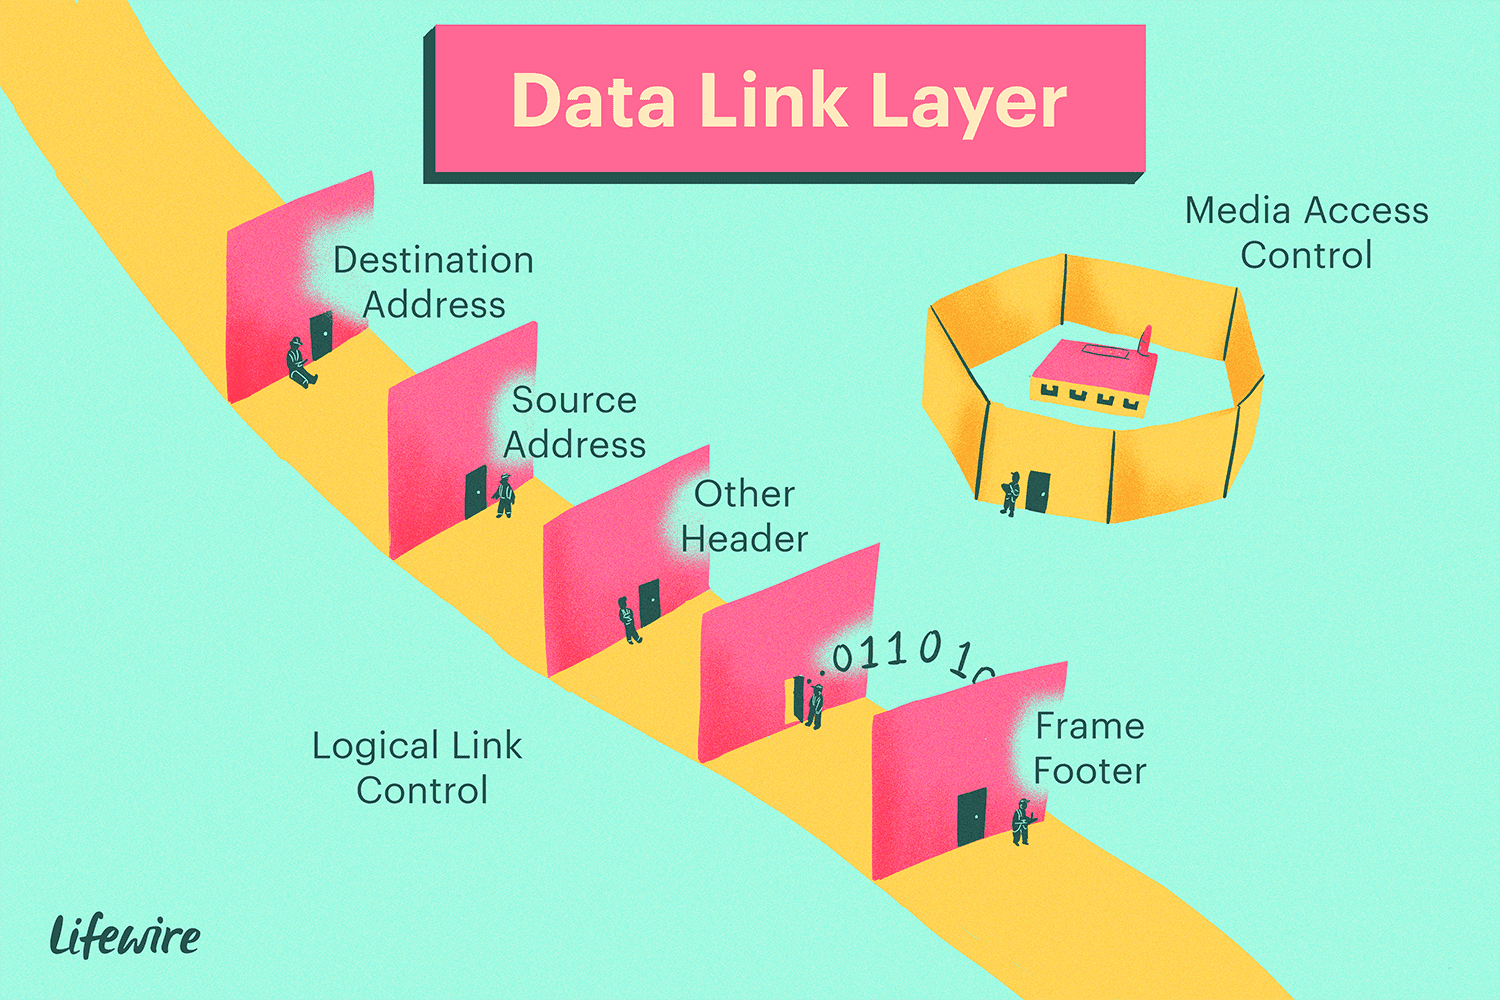 Illustration of Data Link Layer with destination and source address, media access control, and frame footer